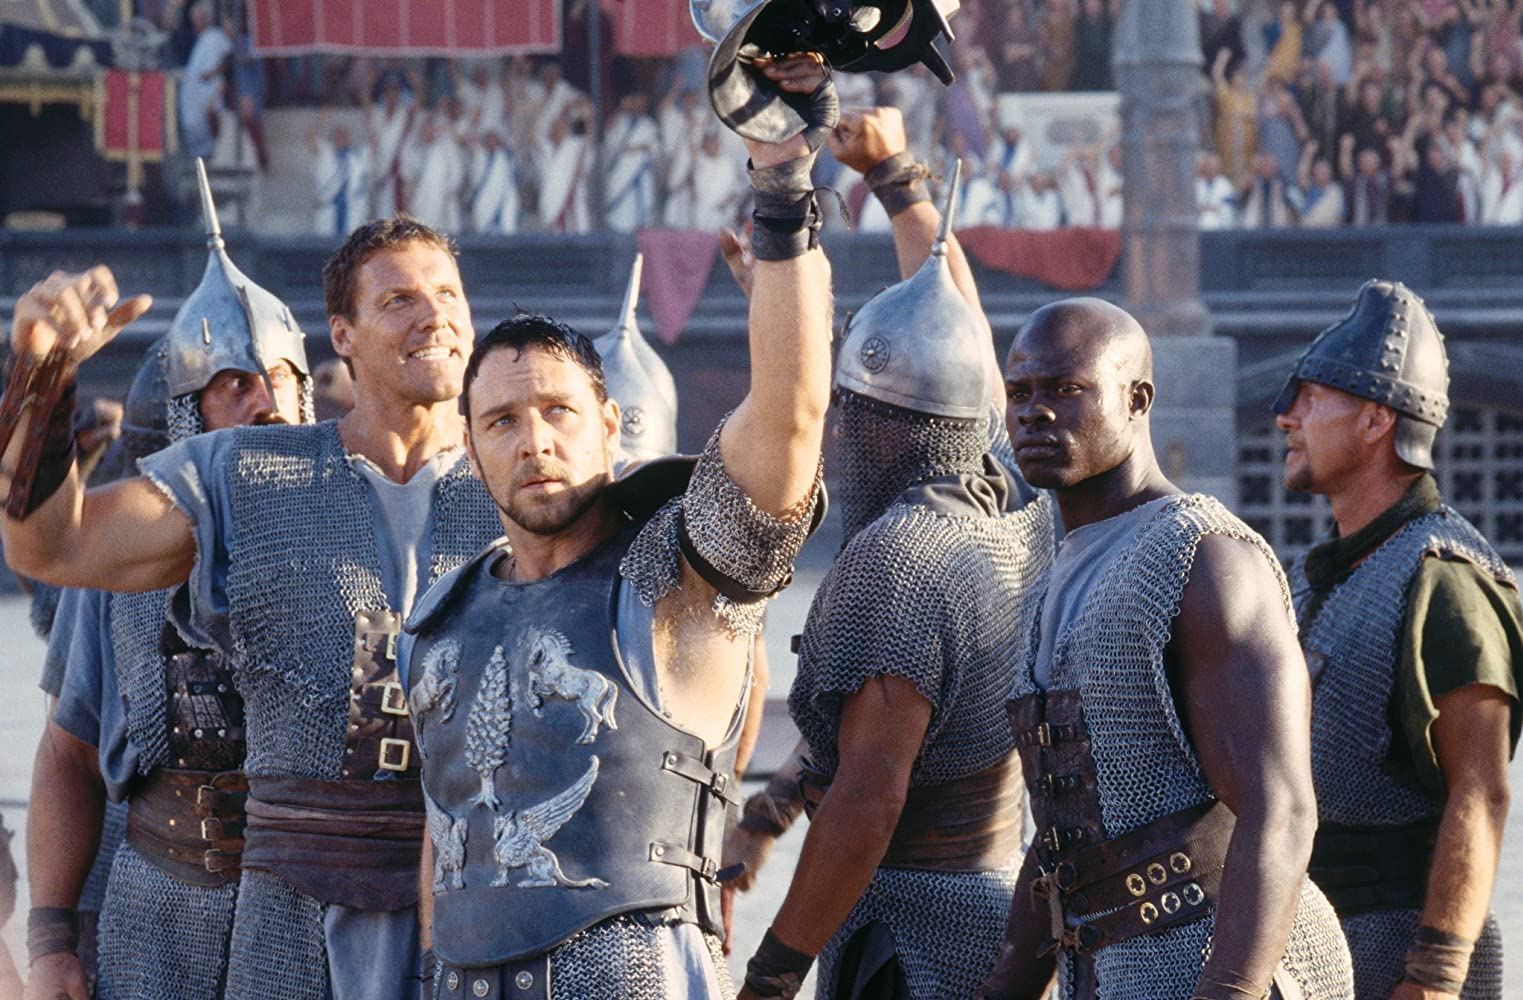 Russell Crowe, Djimon Hounsou, and Ralf Moeller in Gladiator (2000)